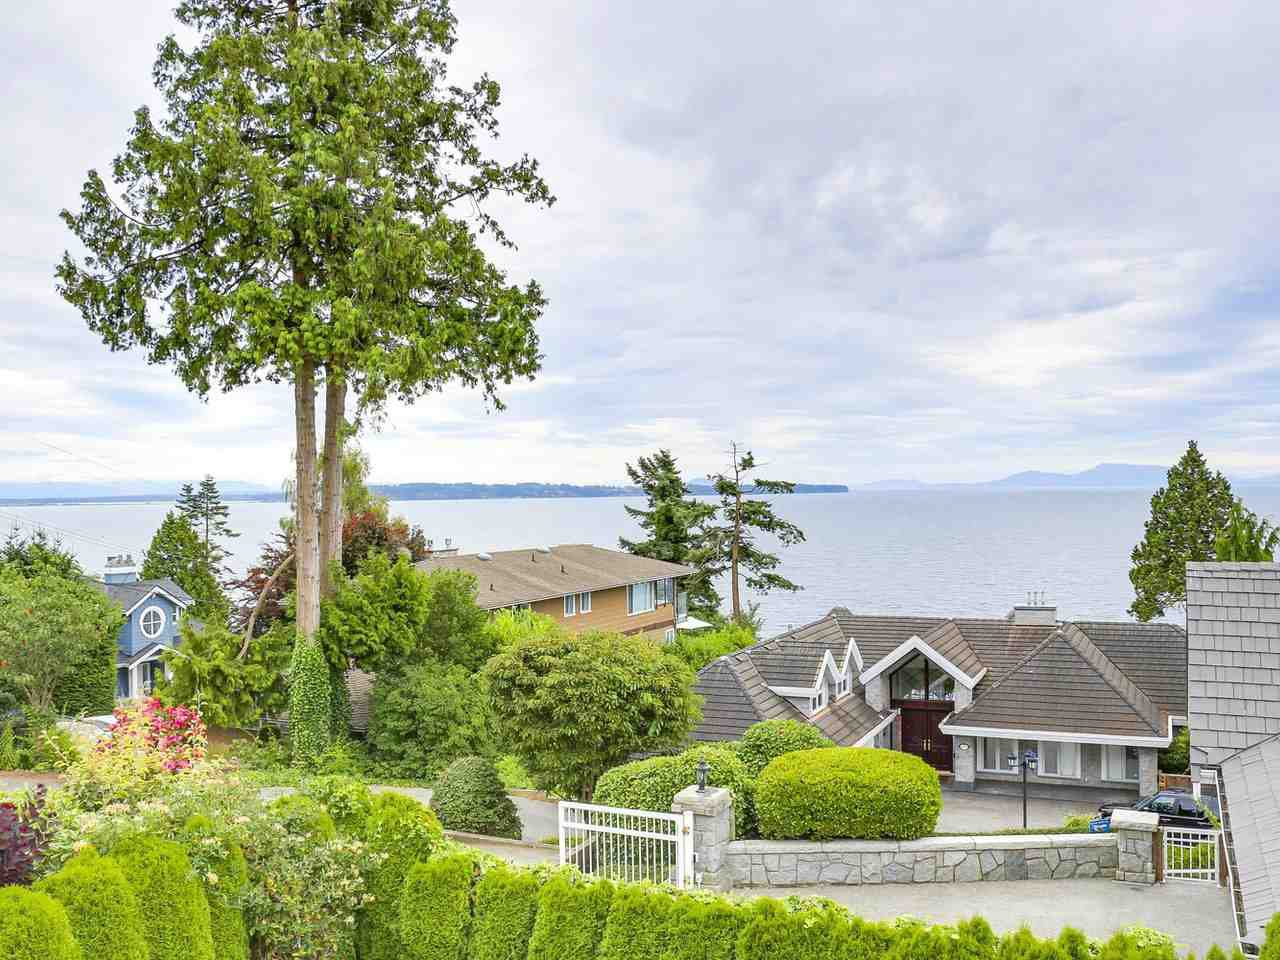 Photo 9: Photos: 1325 132B Street in Surrey: Crescent Bch Ocean Pk. House for sale (South Surrey White Rock)  : MLS®# R2185643